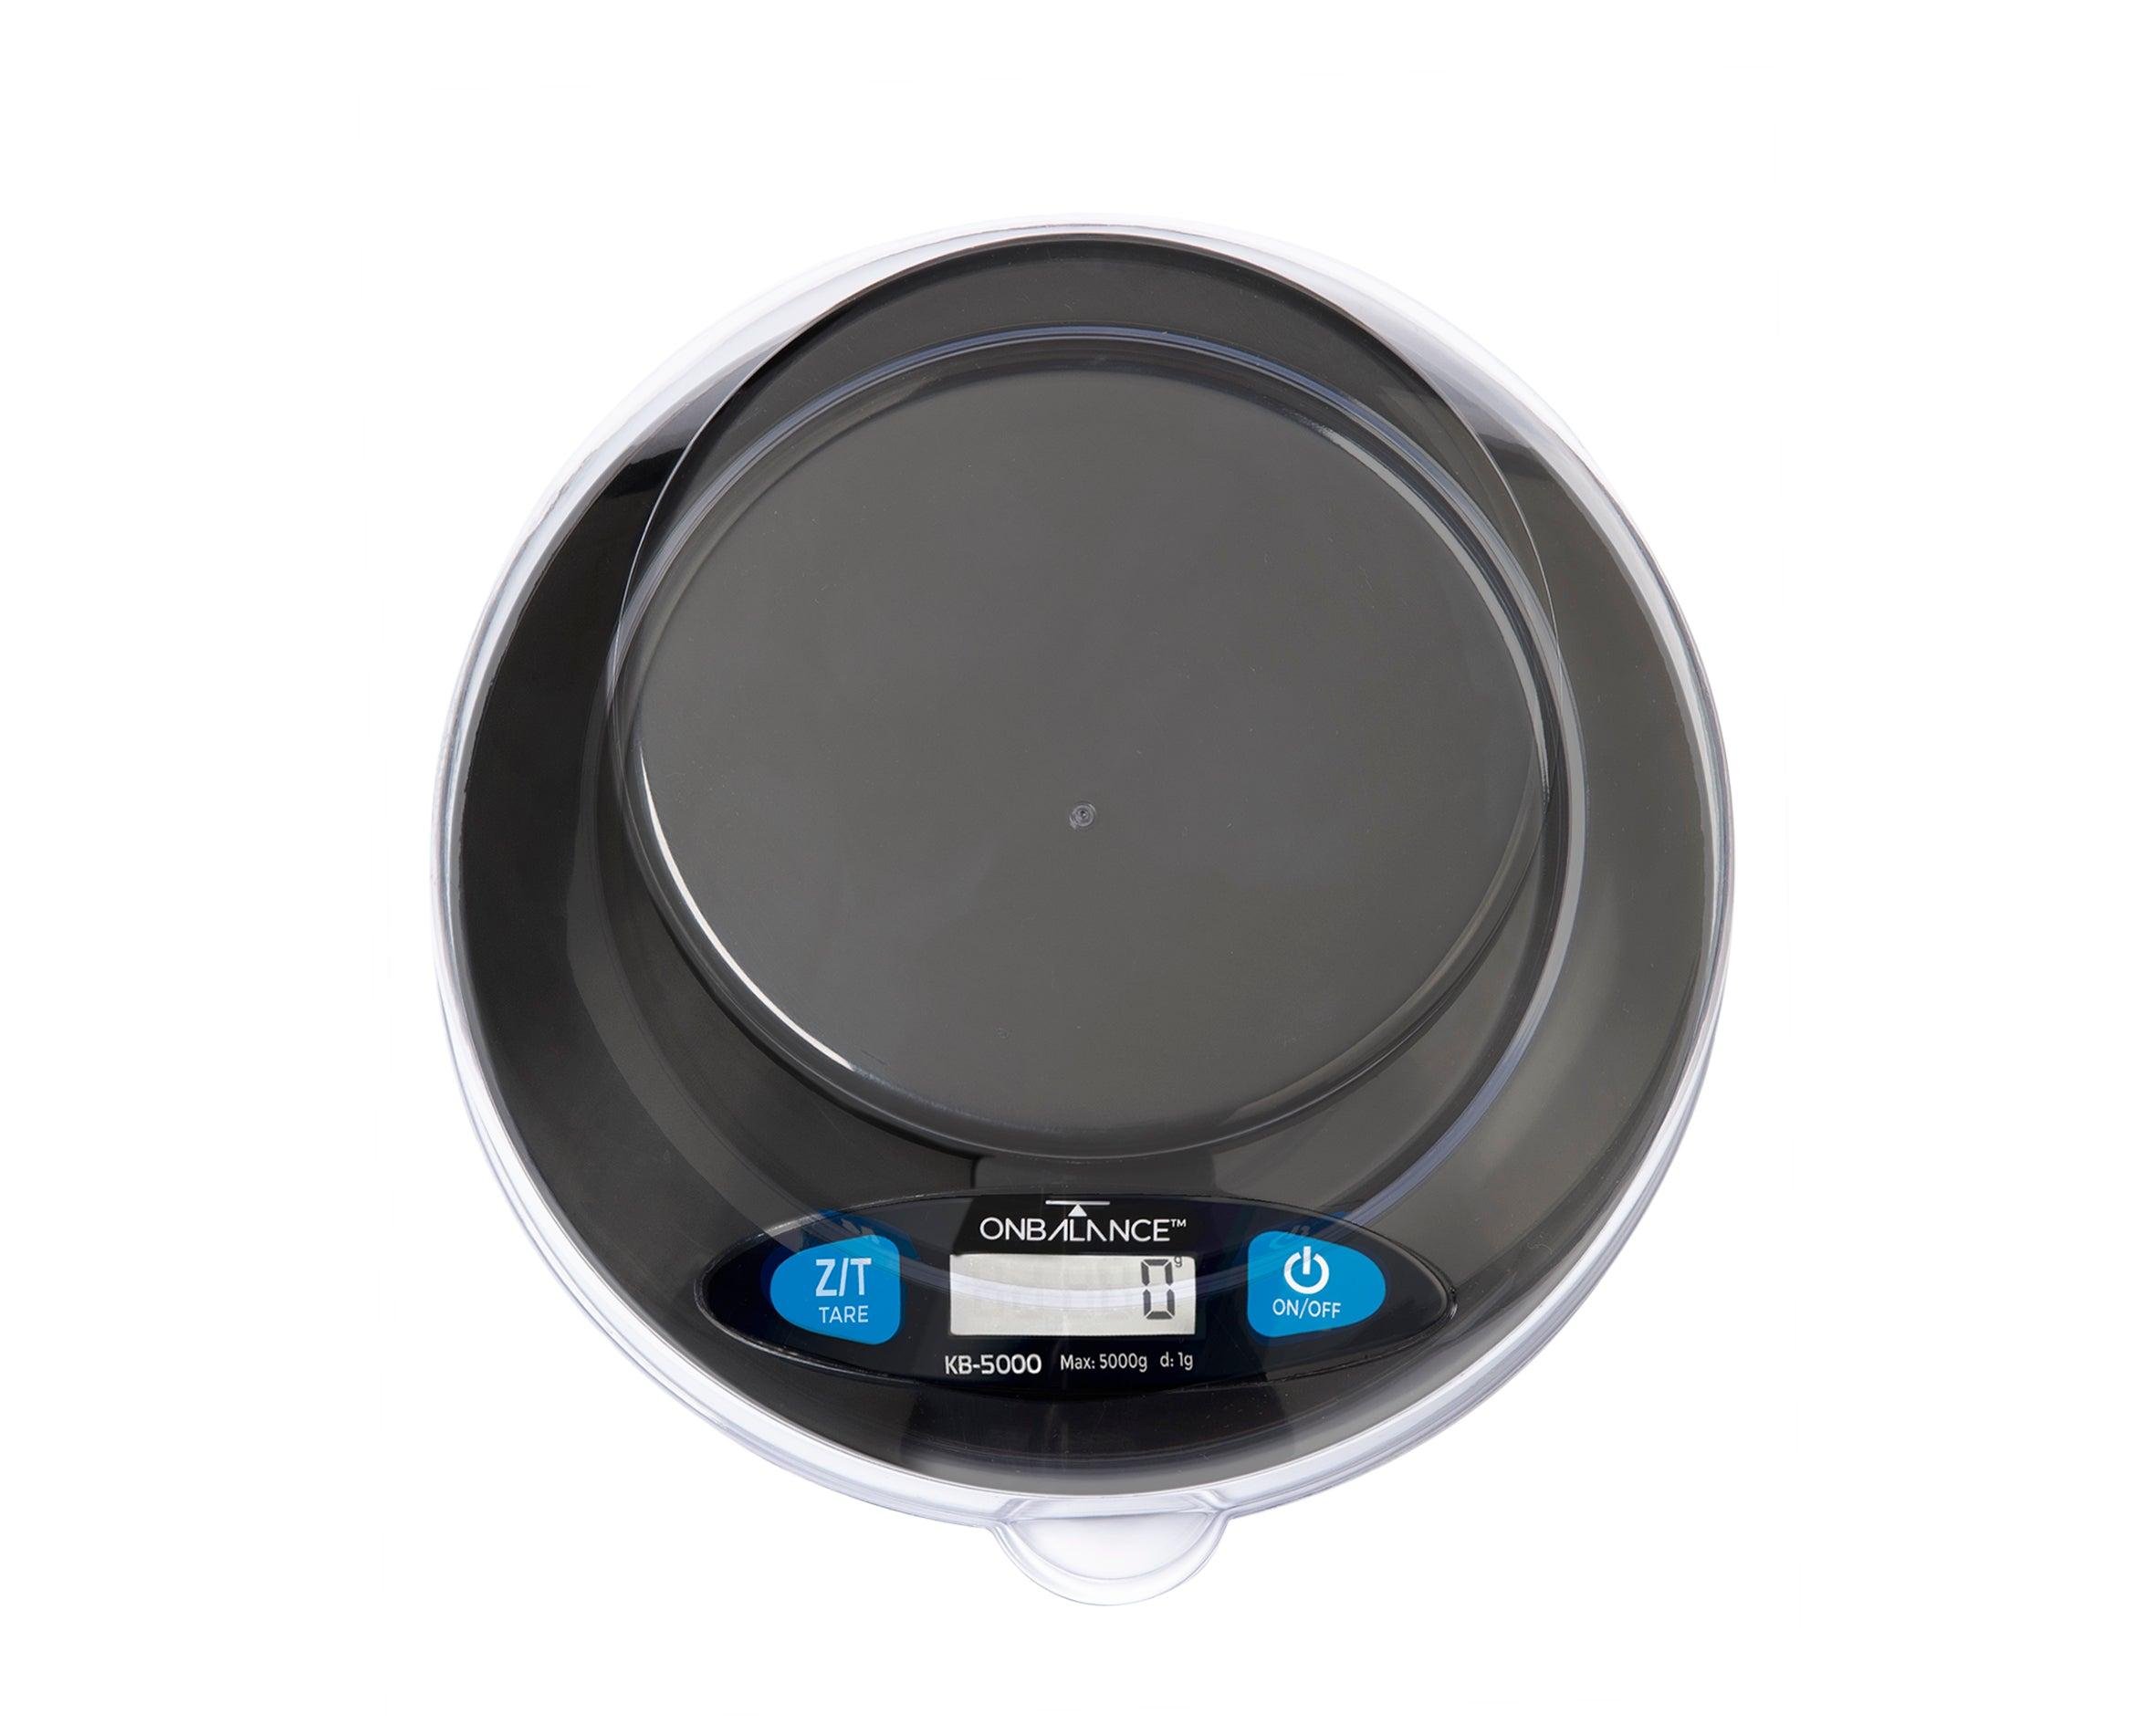 KB-5000 On Balance Versatile Kitchen Scale 5000g x 1g